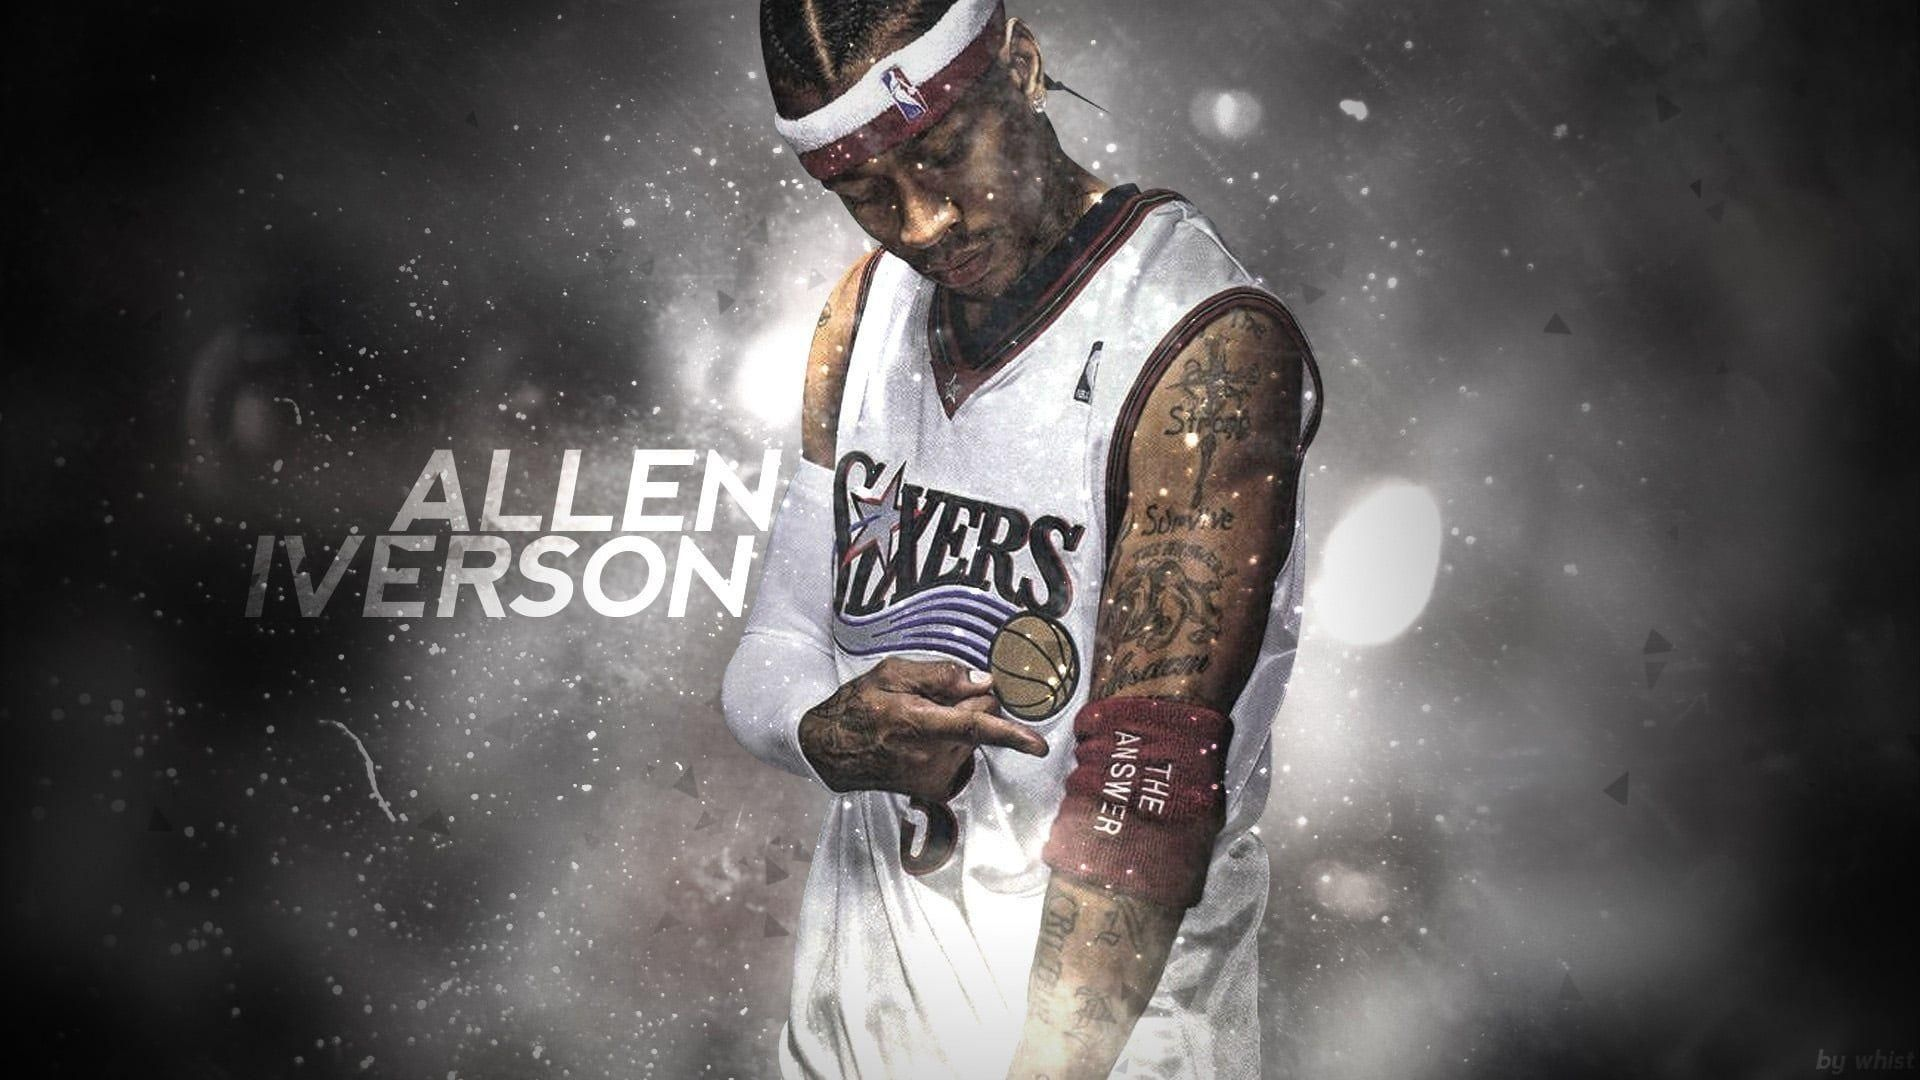 10 New Allen Iverson Wallpaper Hd Full Hd 1080p For Pc Desktop Allen Iverson Wallpapers Allen Iverson Nba Wallpapers